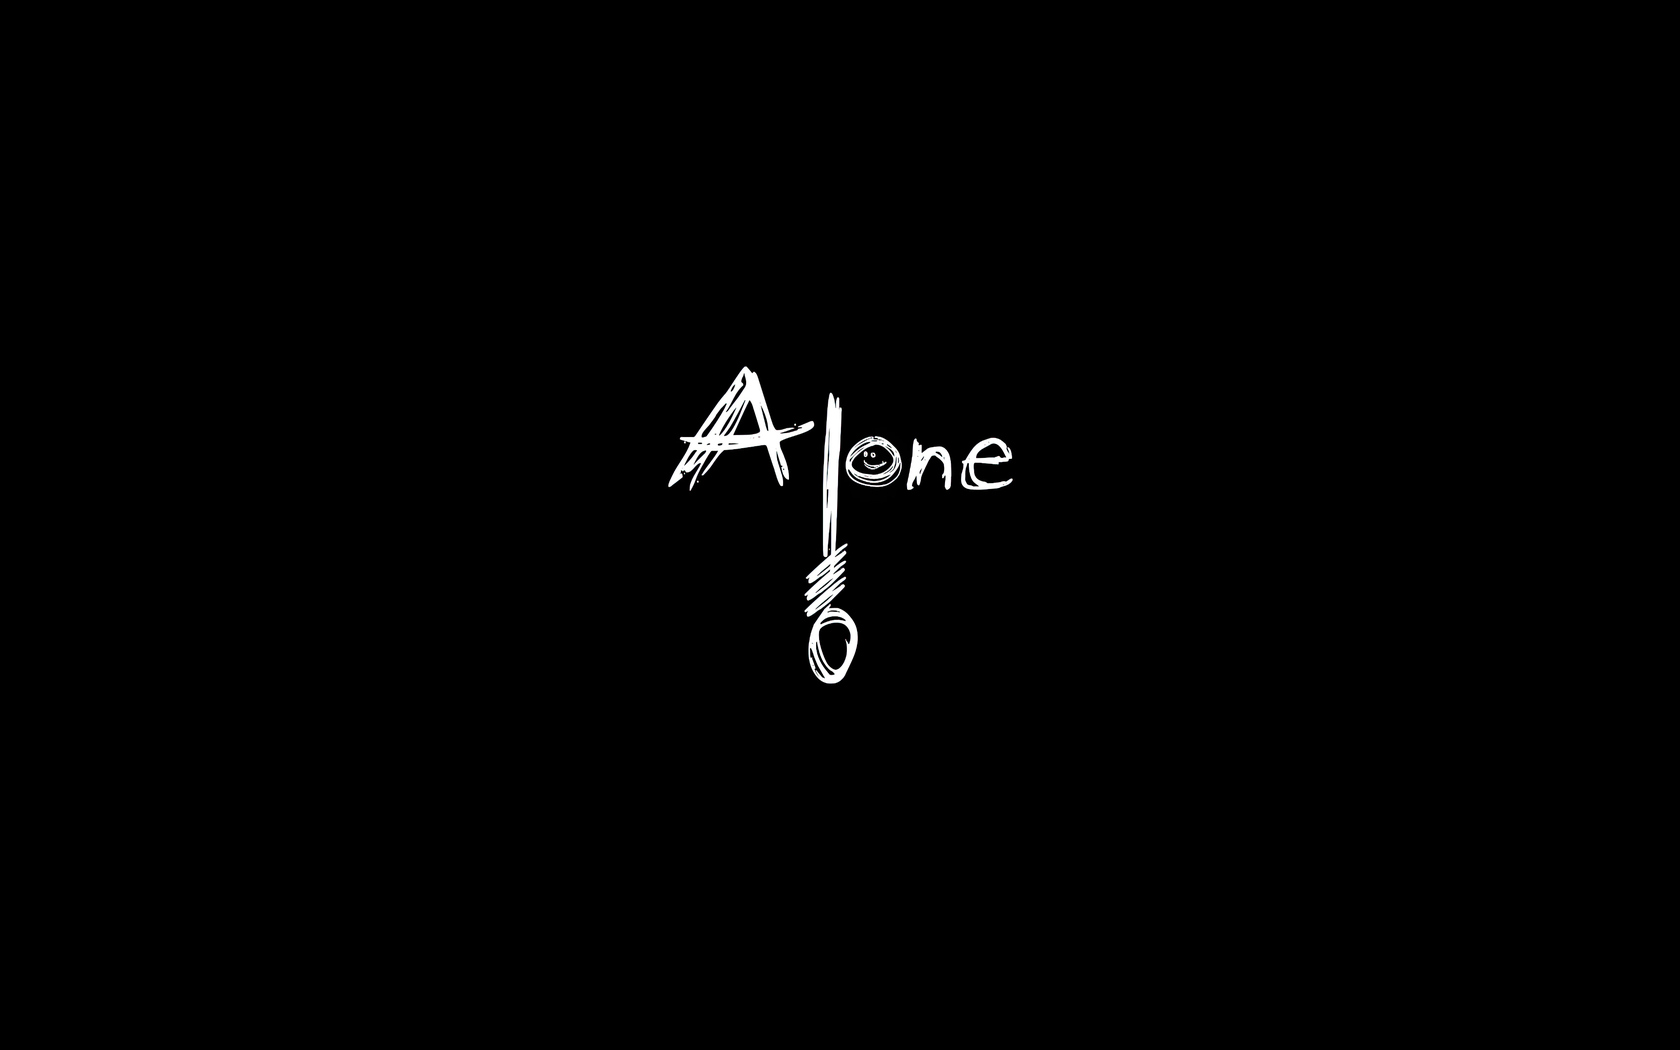 alone-dark-typography-4k-fu.jpg